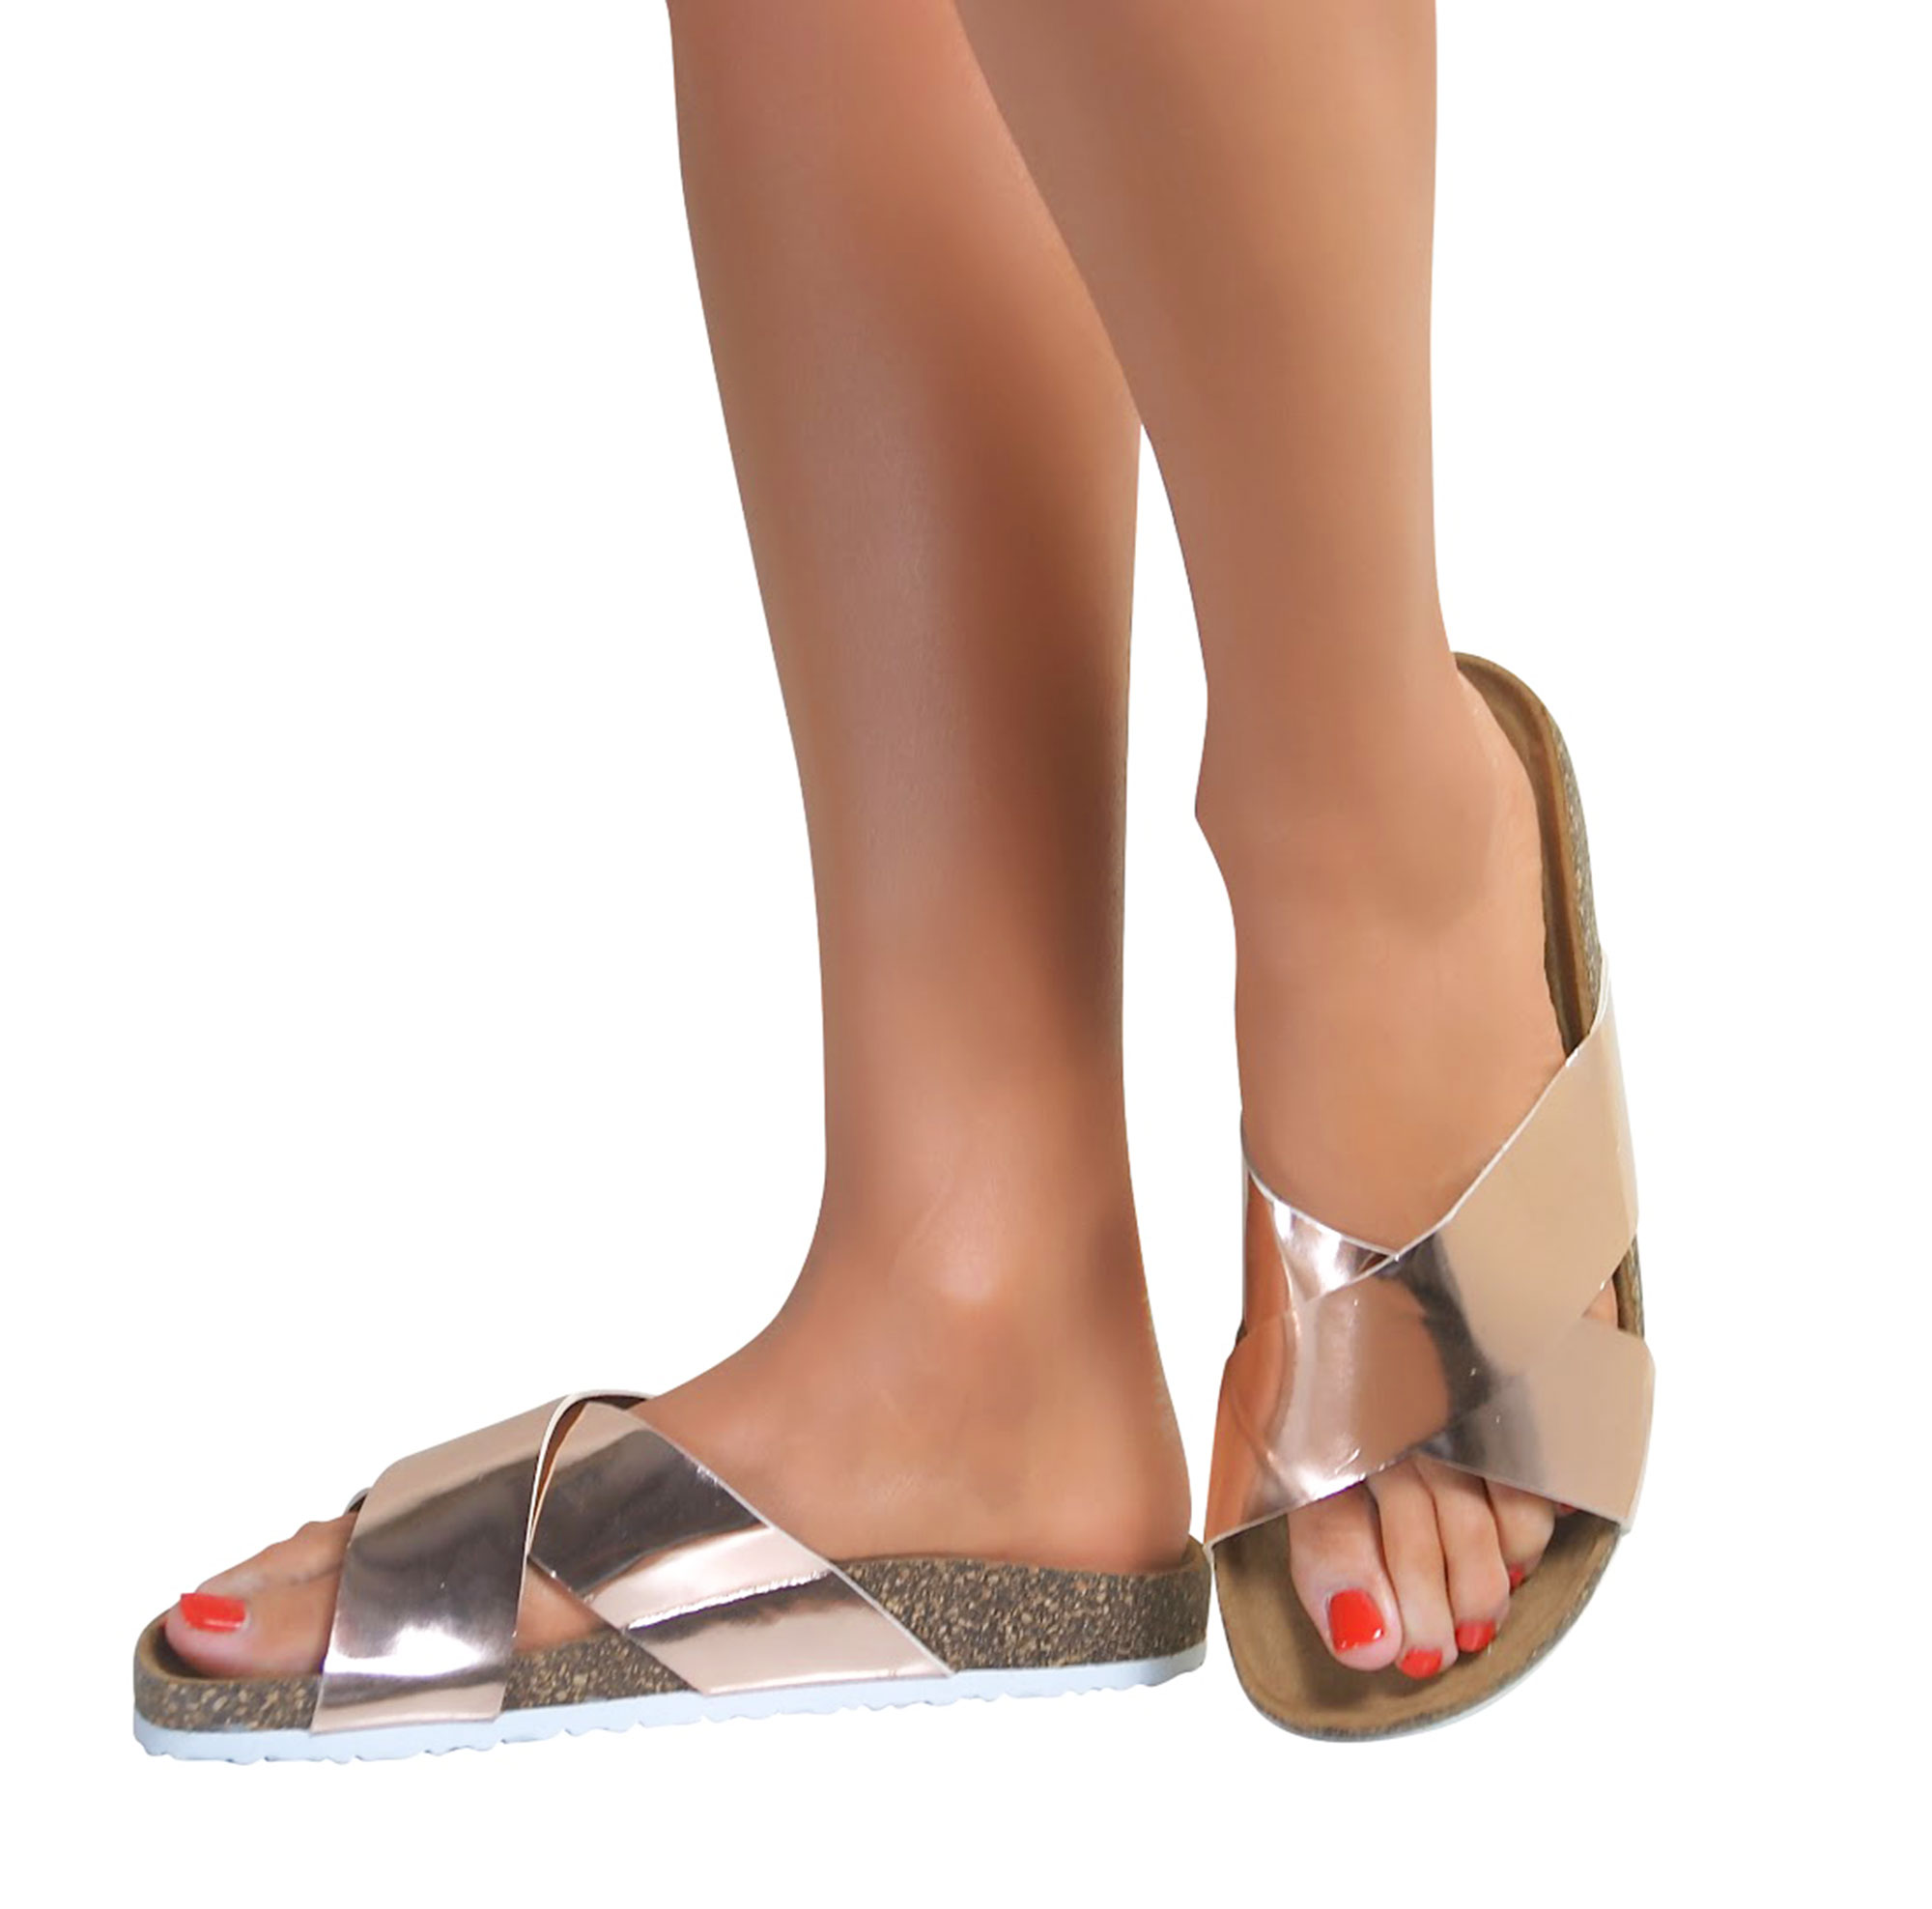 Perfect If Youre A Woman Who Likes To Let Your Shoes Do The Talking While You Do The Walking, These Gloriously Colorful Flat Sandals From Spring Step Will Say A Lot The LArstiste Santorini Is A Handpainted, High Quality Leather Womens Slideon Sandal